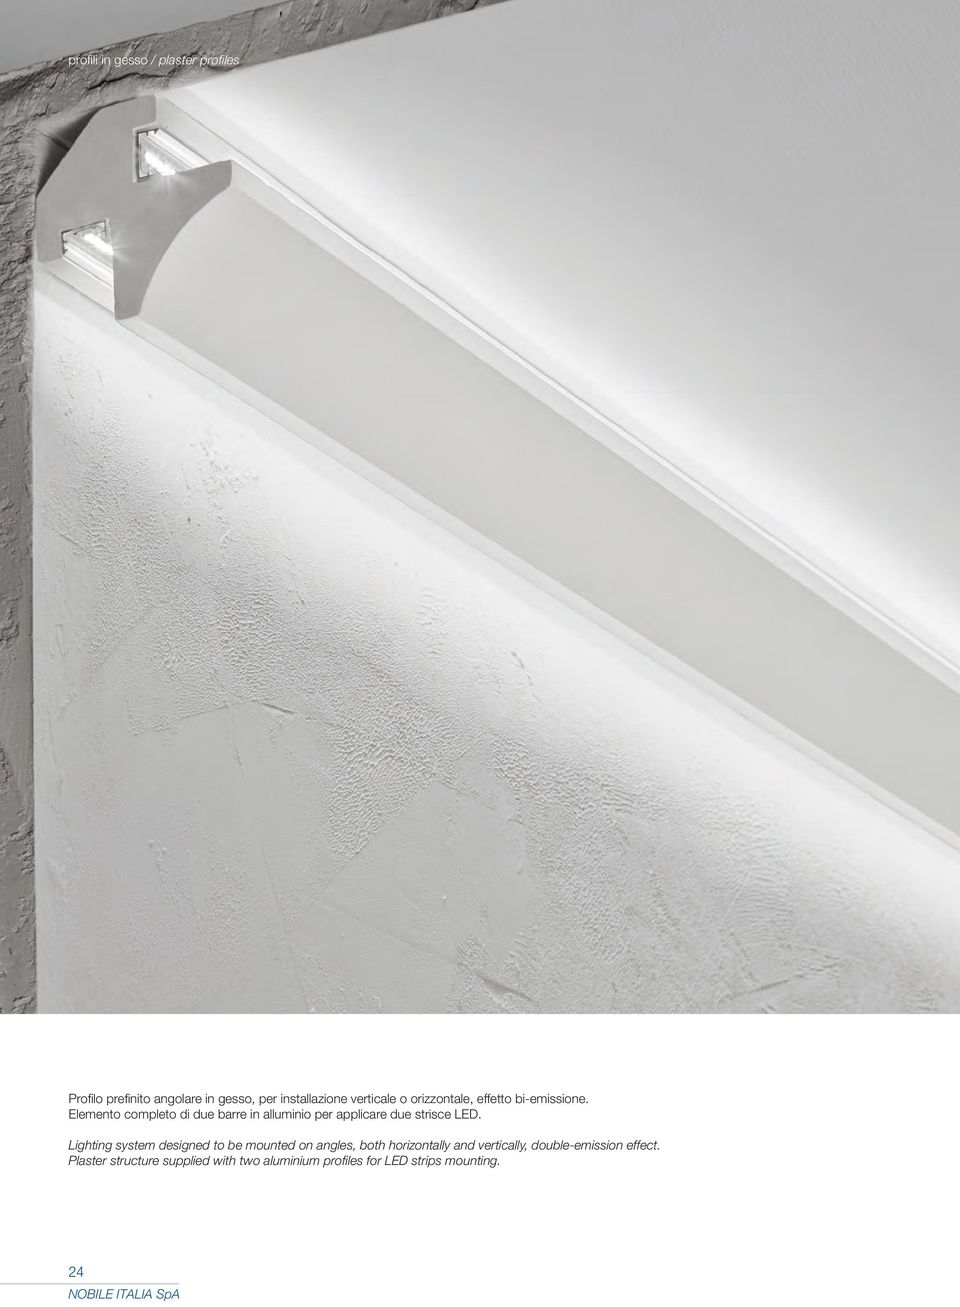 Lighting system designed to be mounted on angles, both horizontally and vertically,